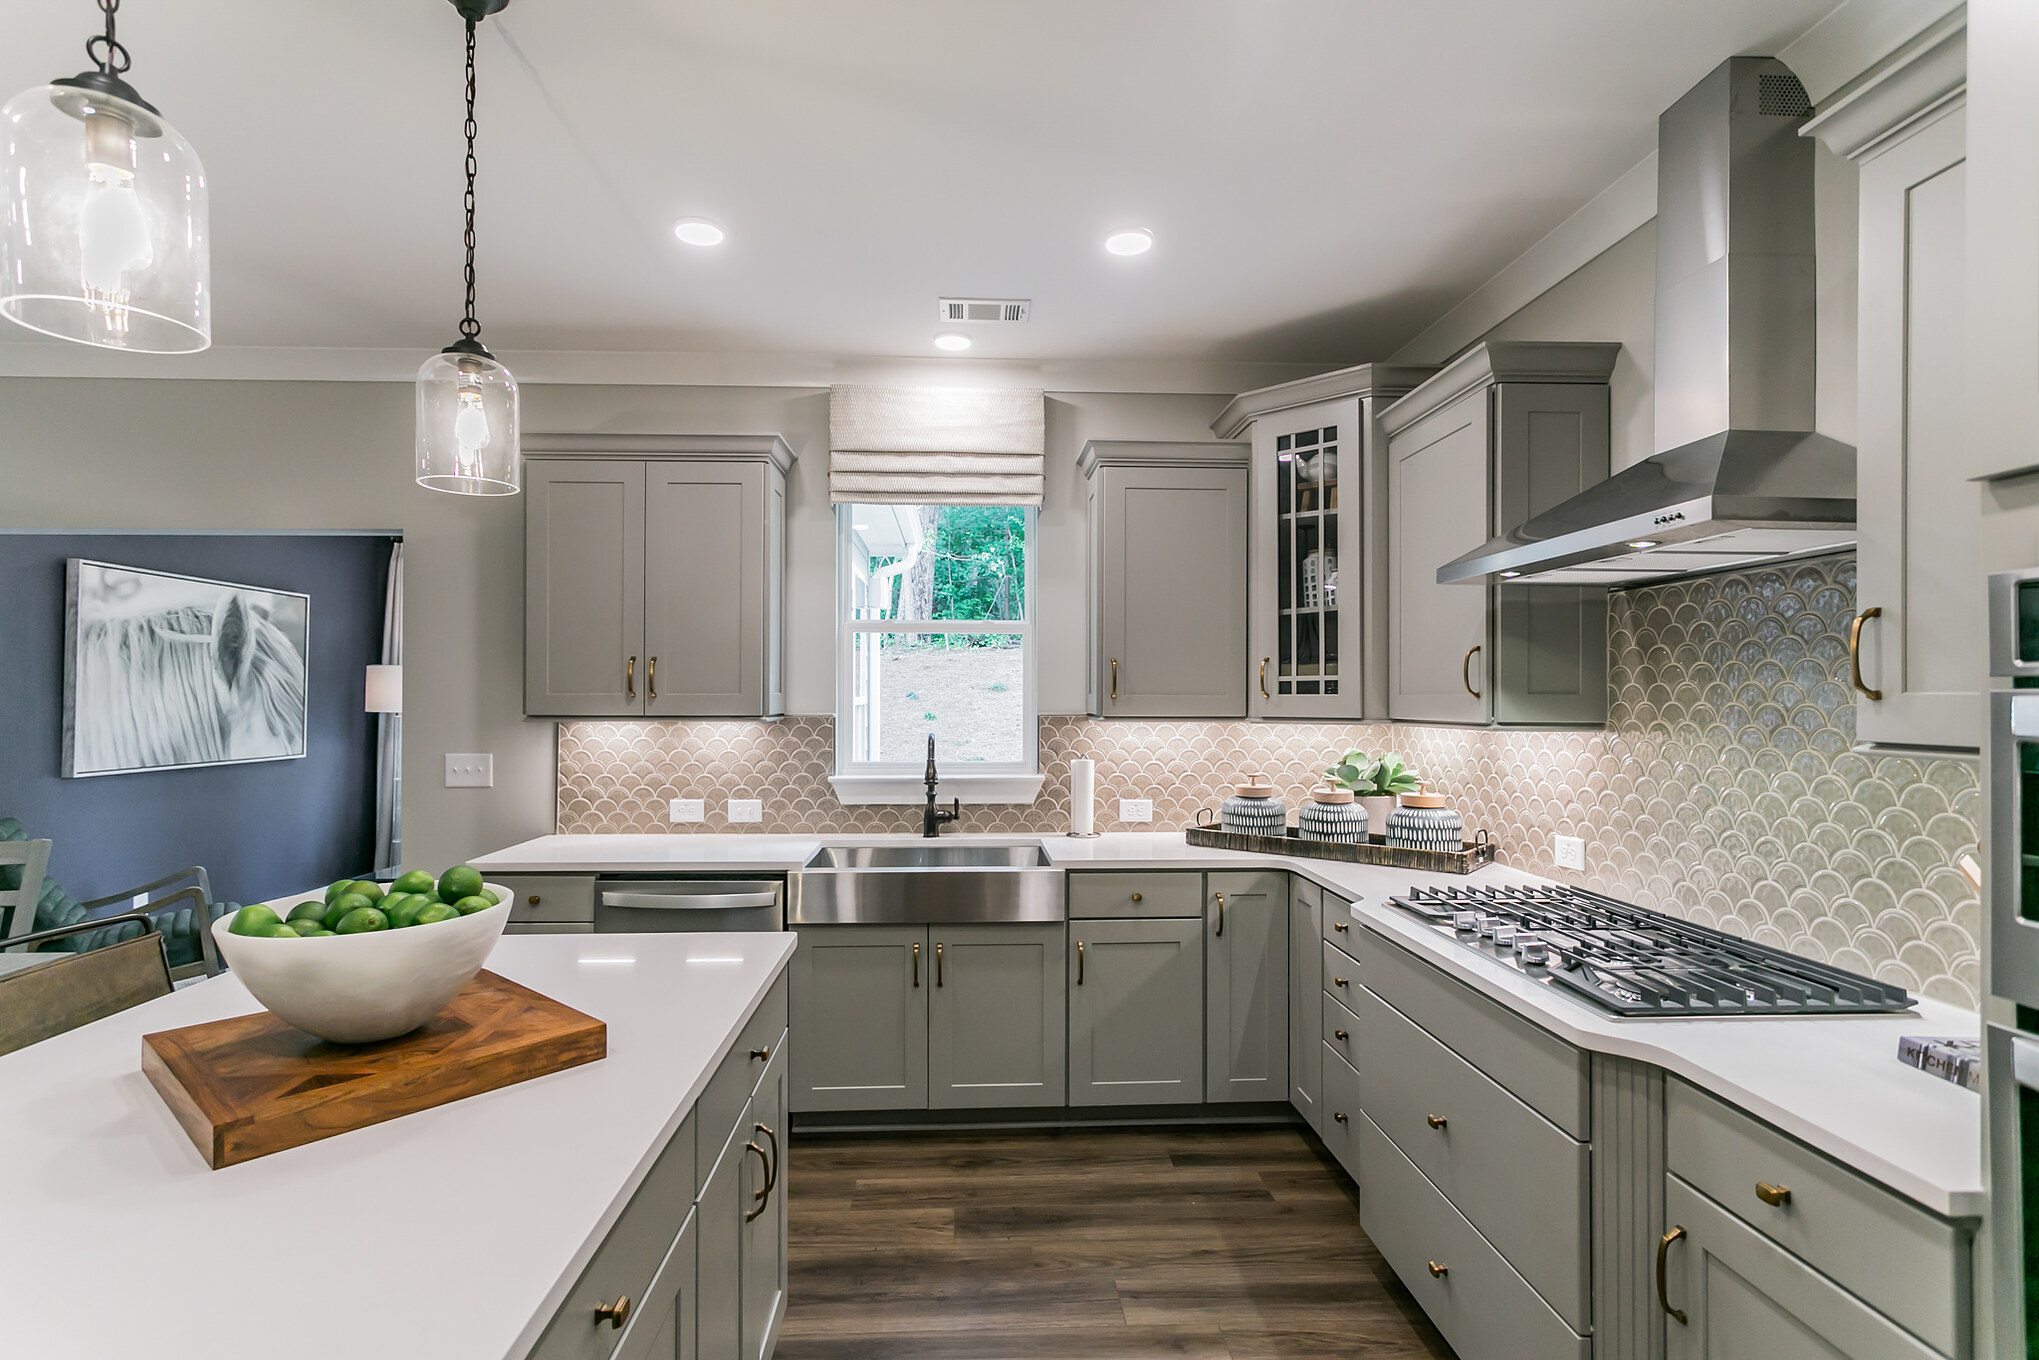 charleston-windsor knoll-kitchen.jpg